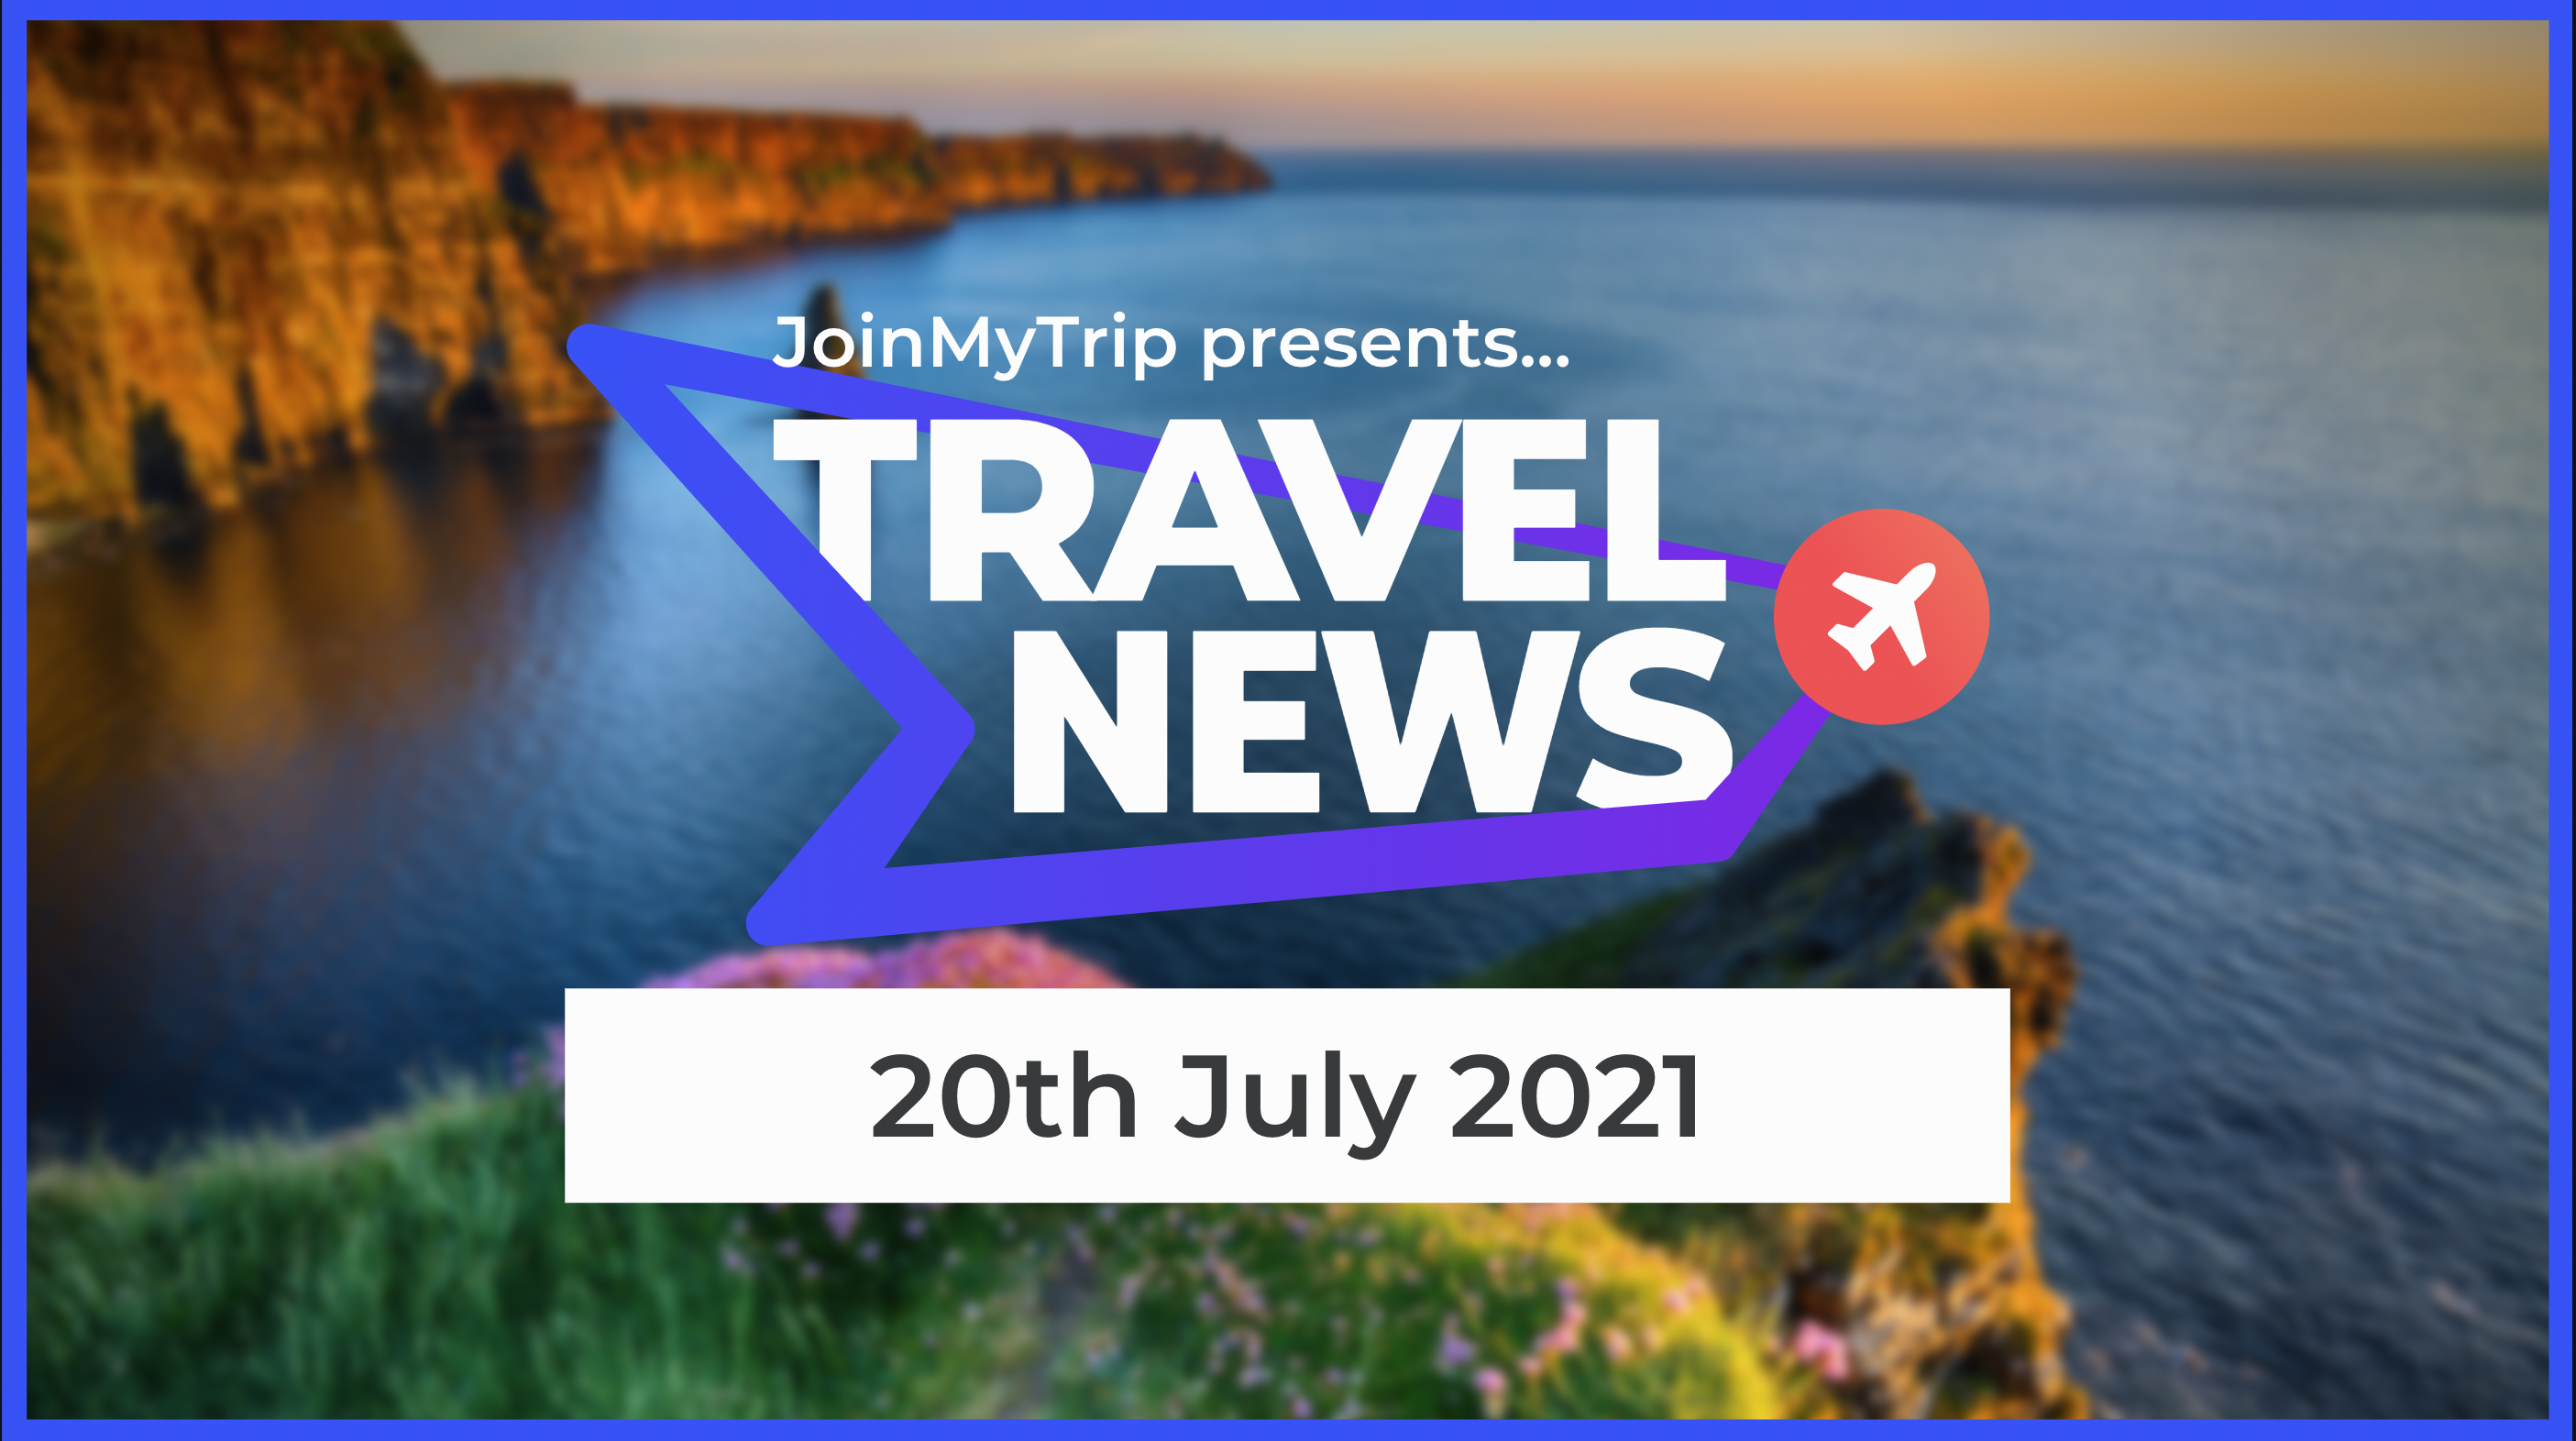 Travel New on the 20th of July 2021